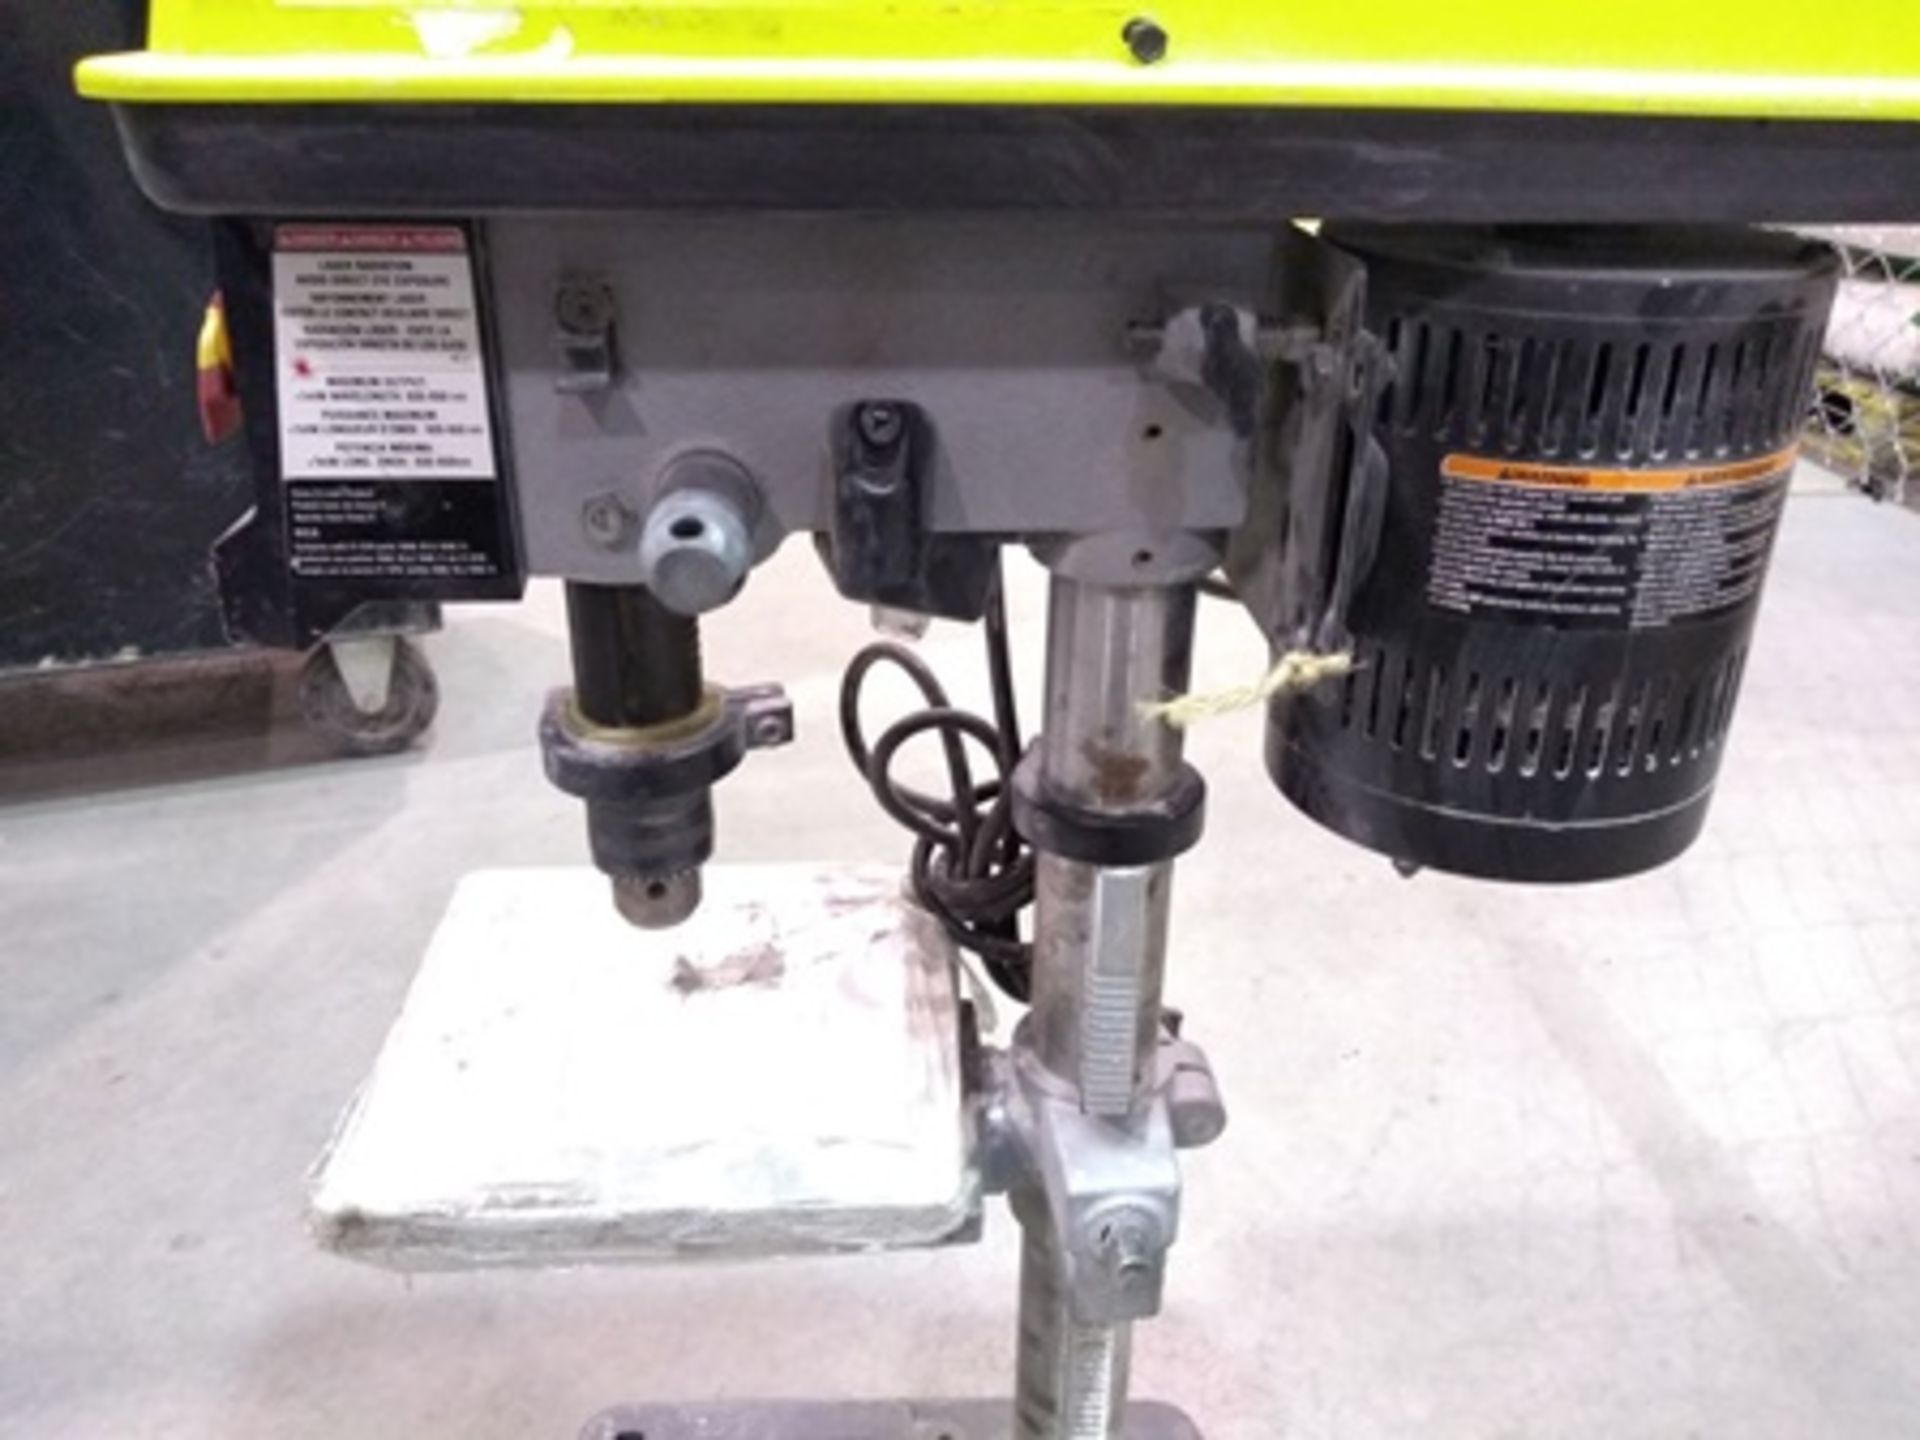 Lot 1 - Ryobi column drill (chuck and lasser alignment system included), 1/2 hp engine.